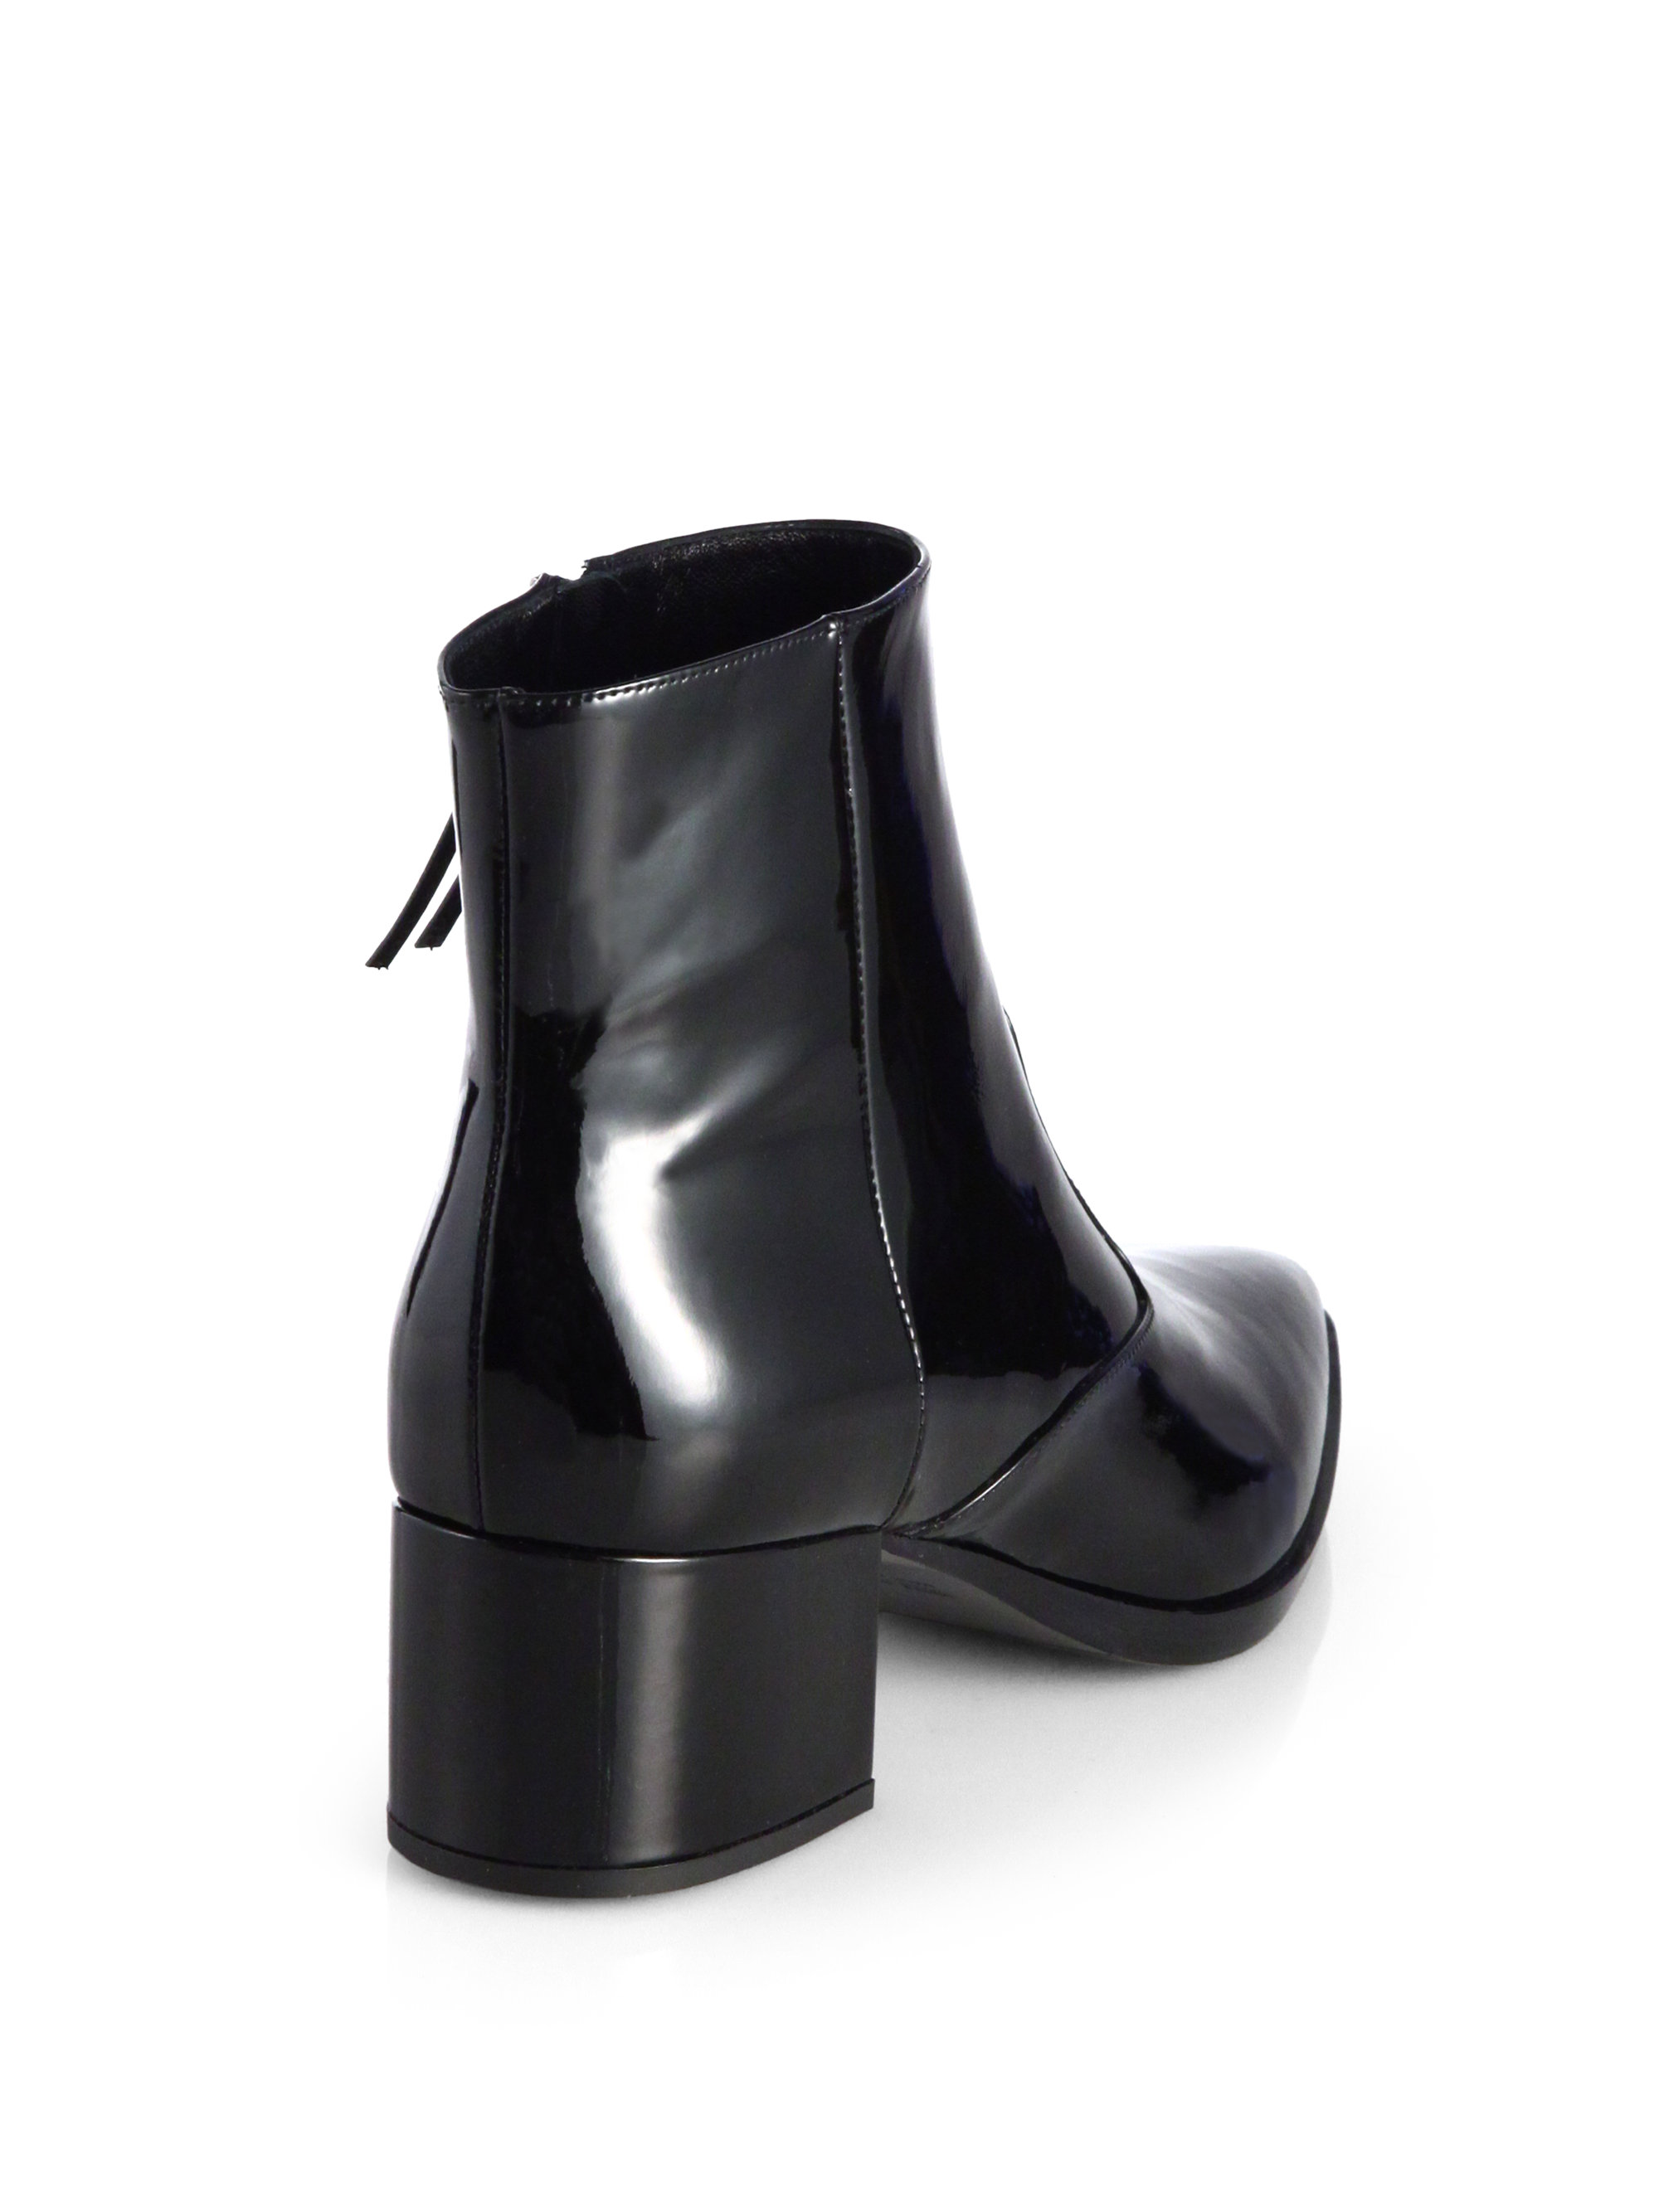 Miu Miu Leather Boots md0RZZLJq